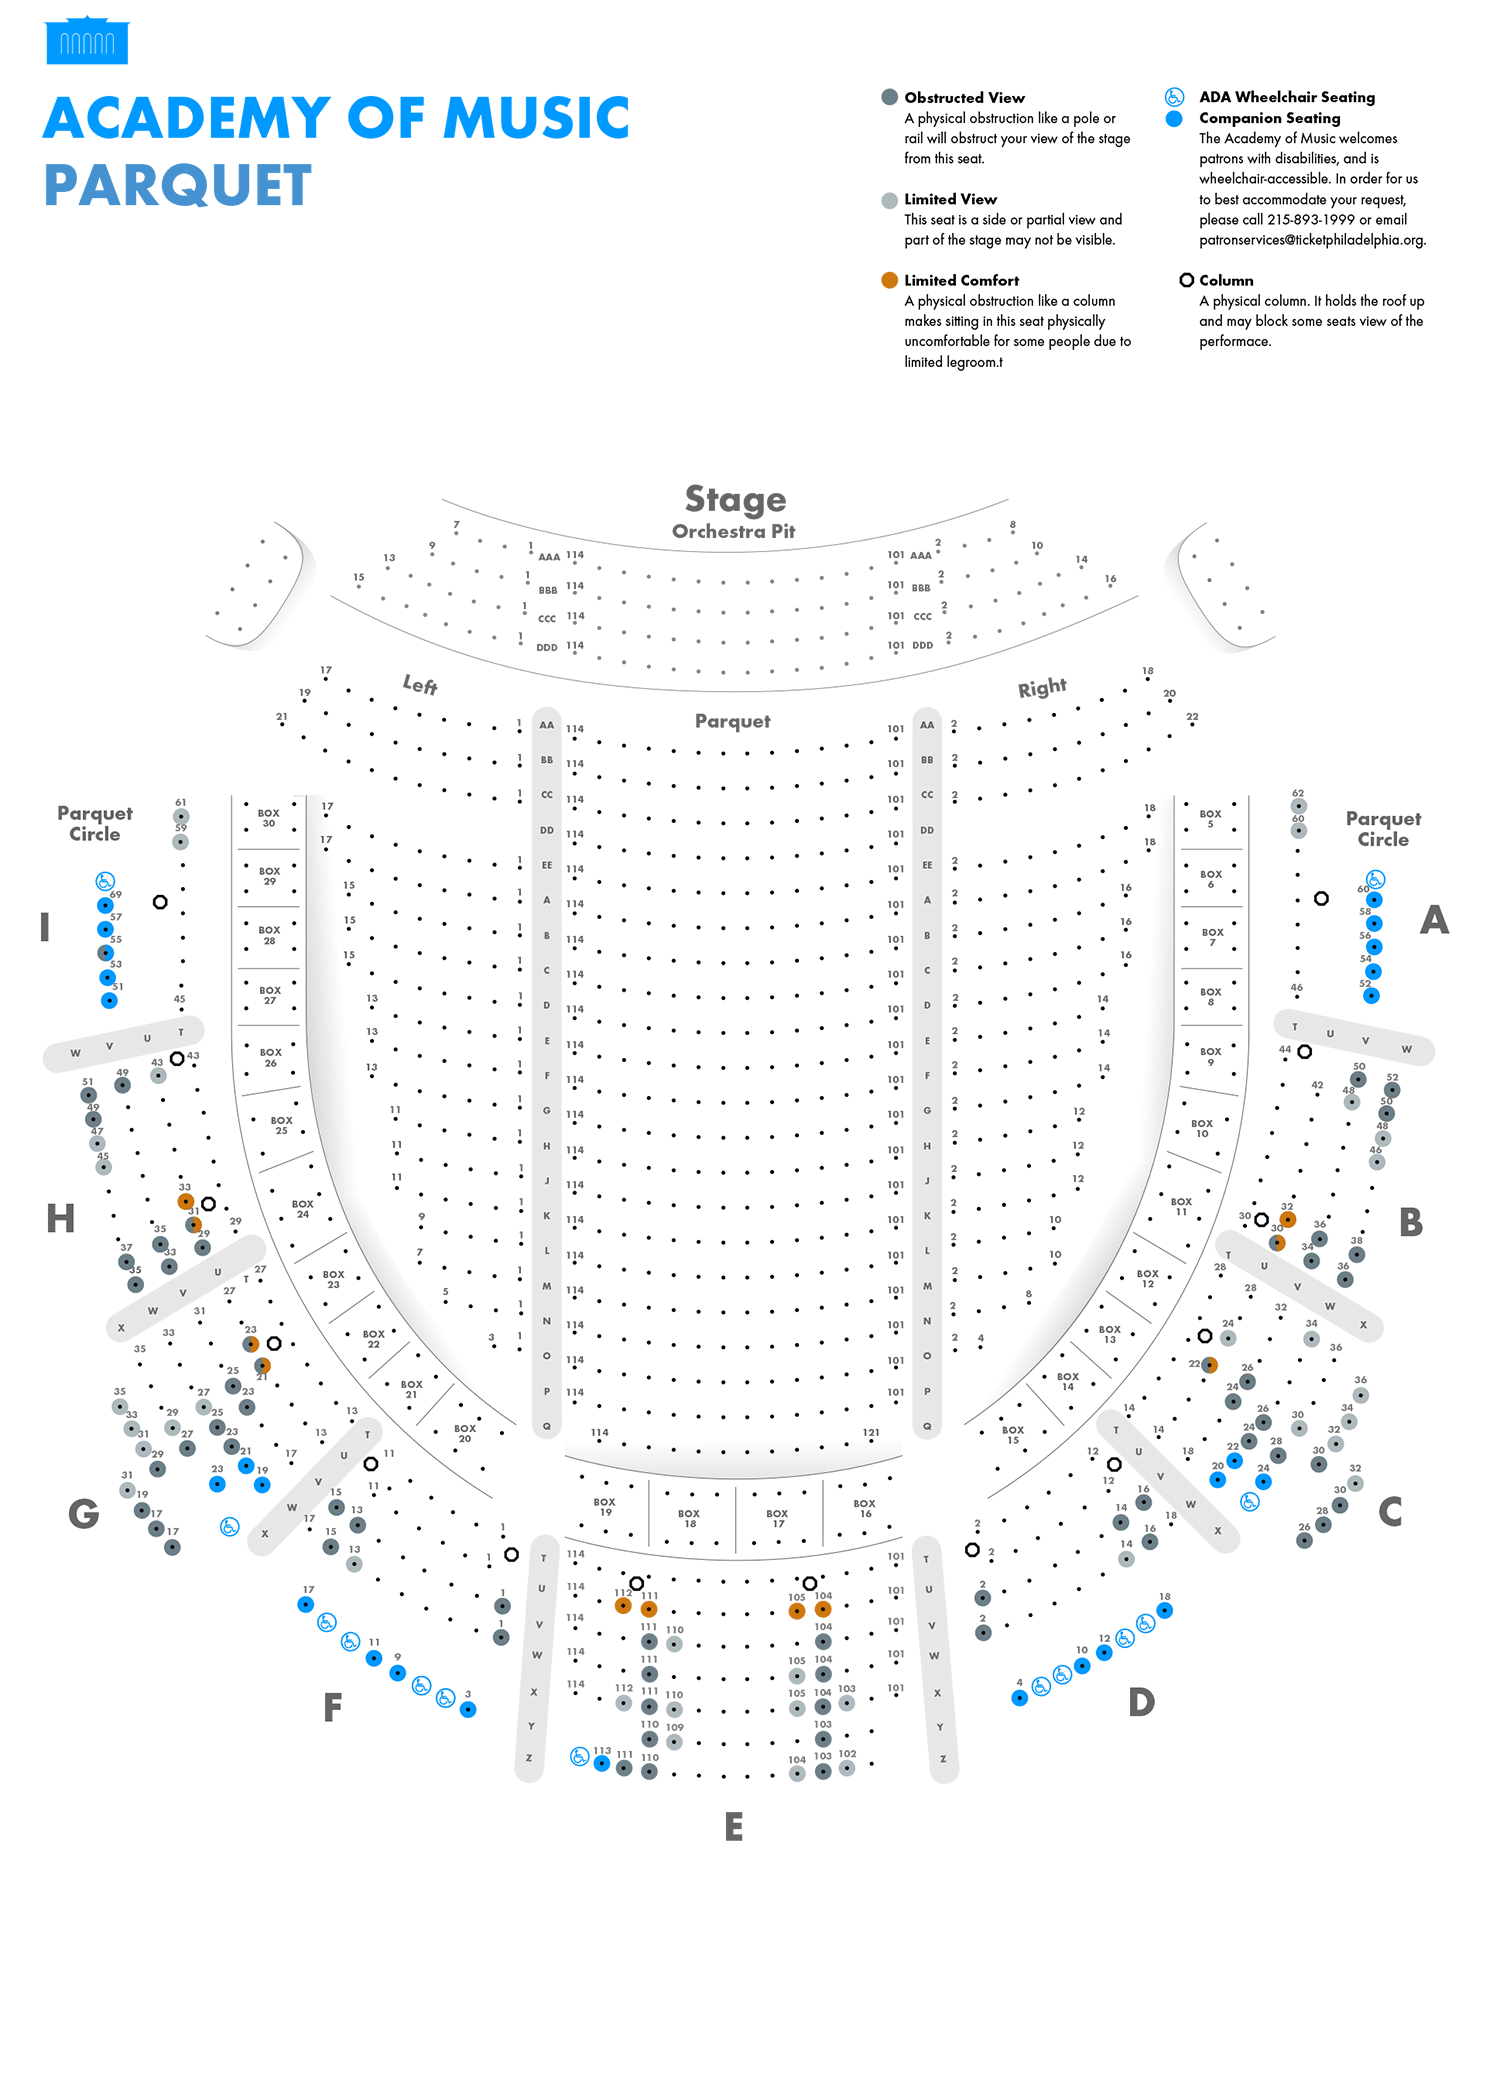 Academy Of Music Parquet Seating Chart